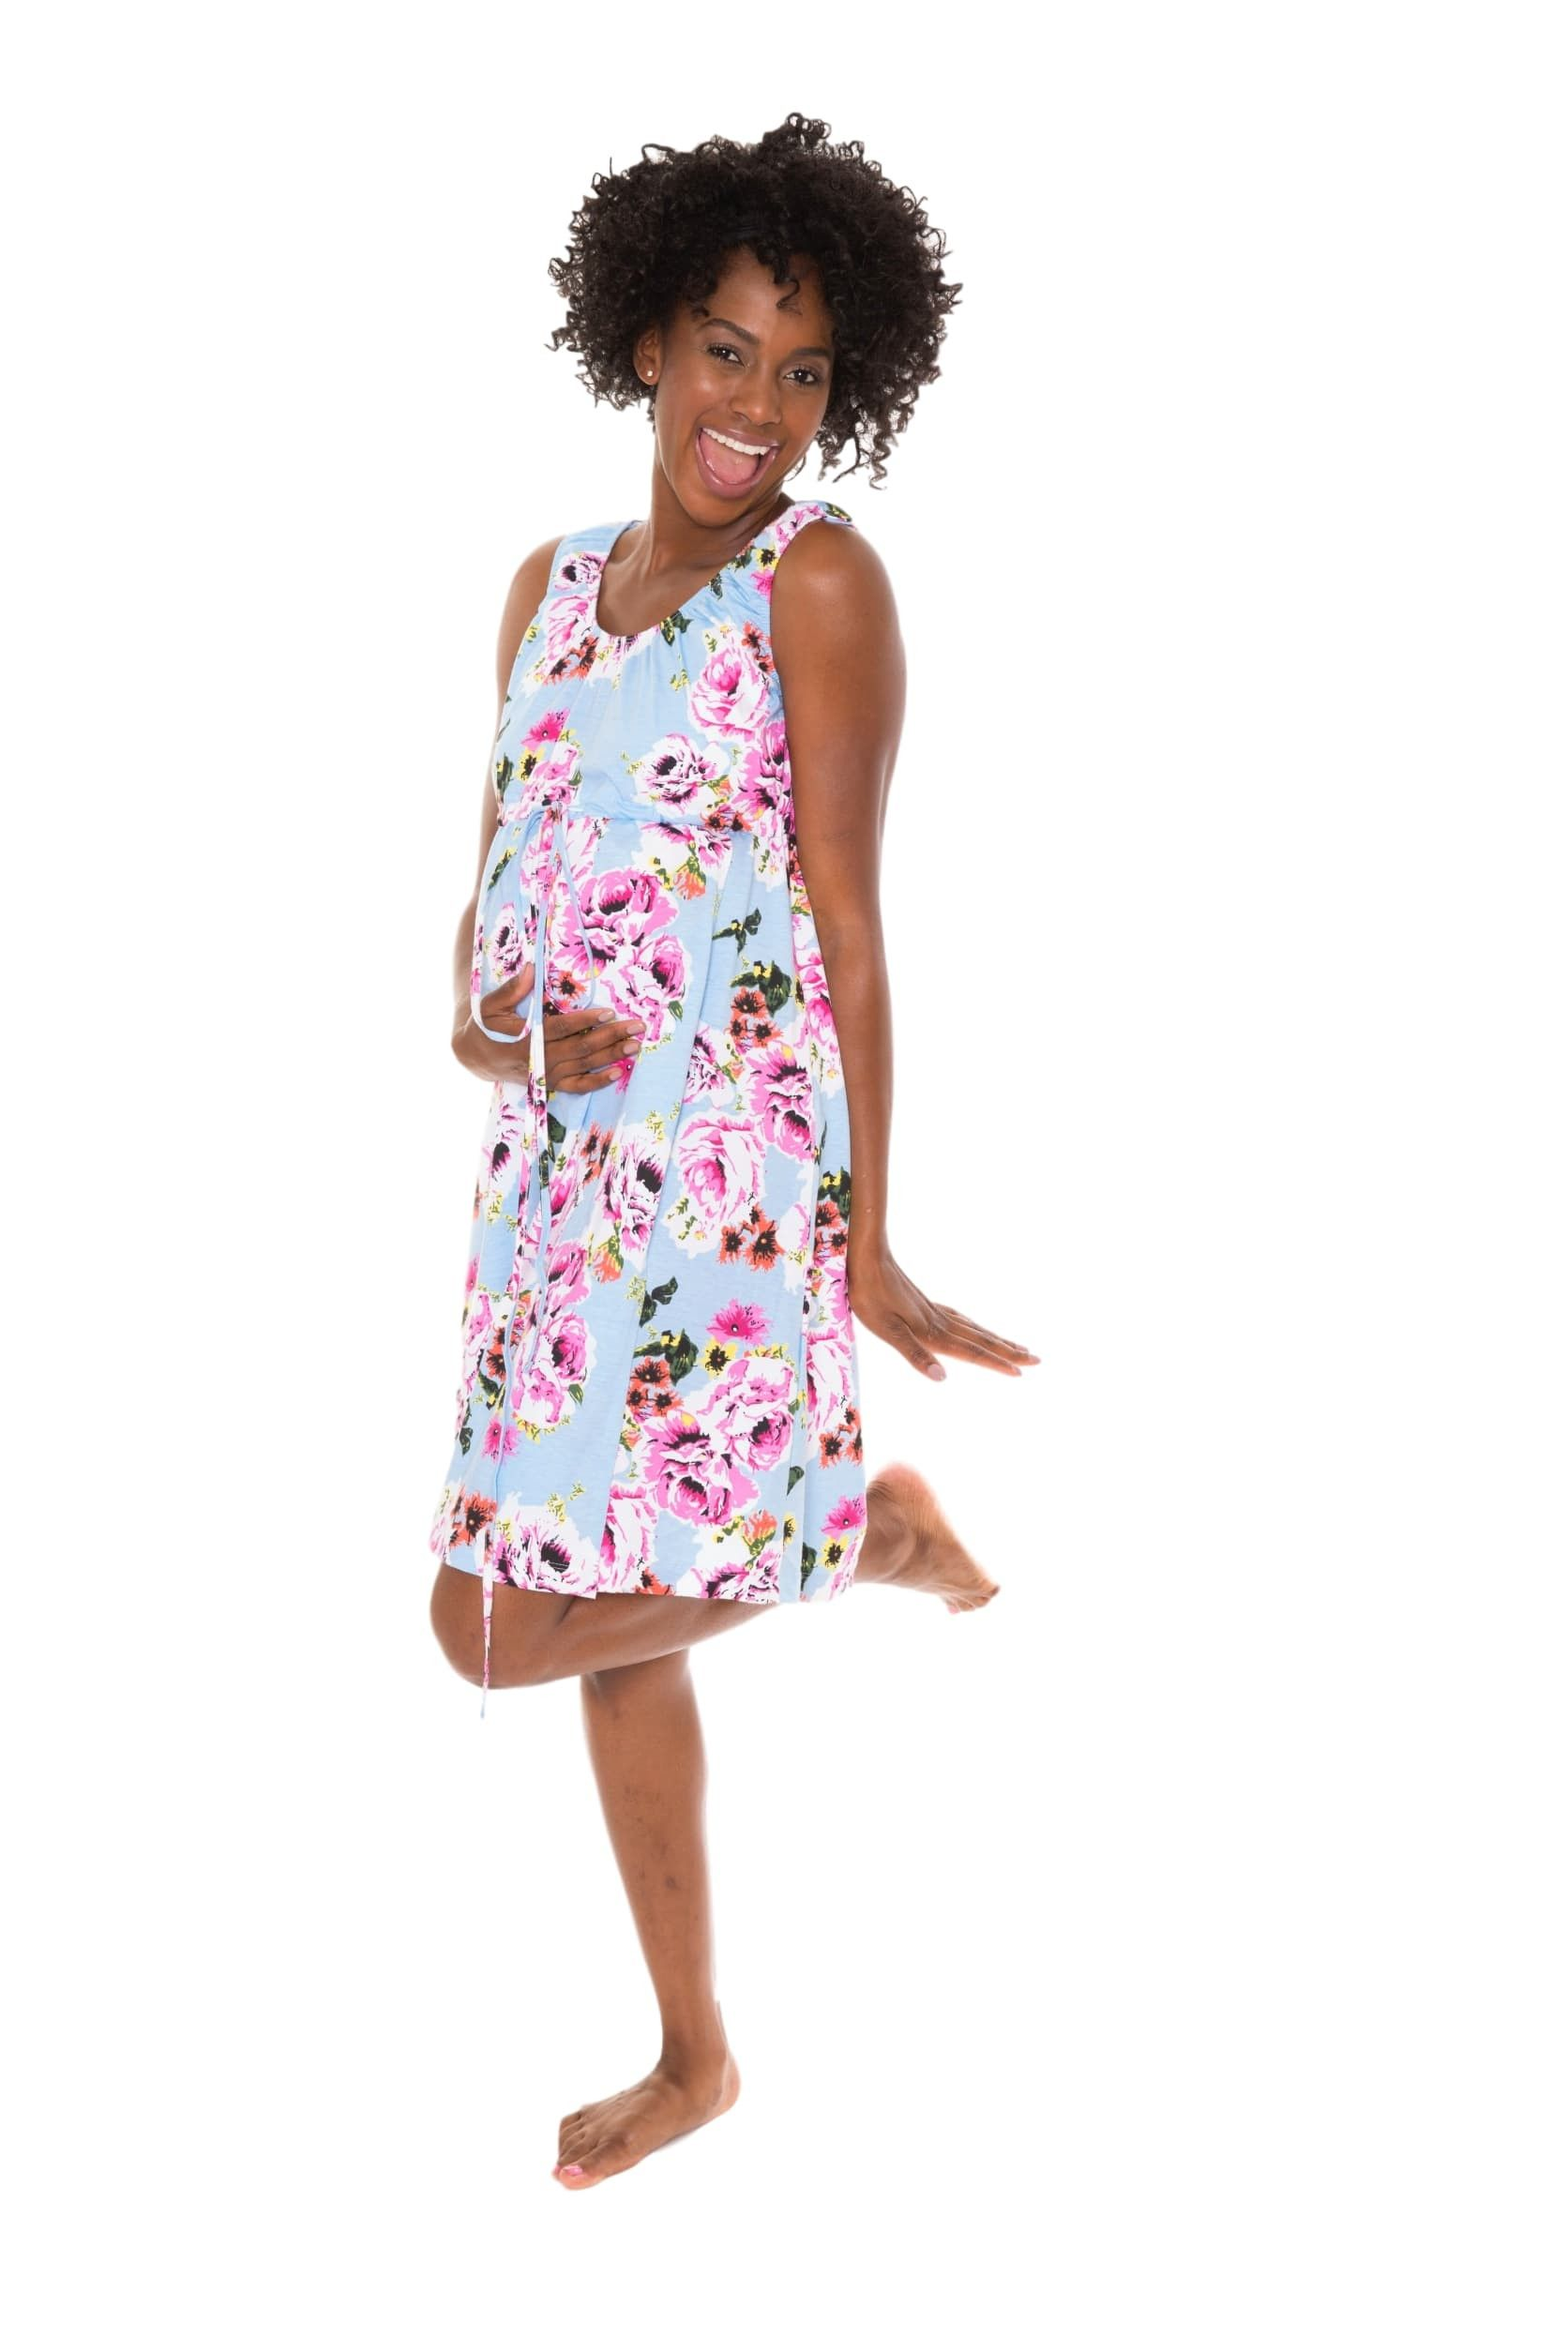 9100b168a8913 This is Labor Gown! Super feminine and functional! The new Isla Floral 3 in 1  Labor / Delivery / Nursing Birthing Gown